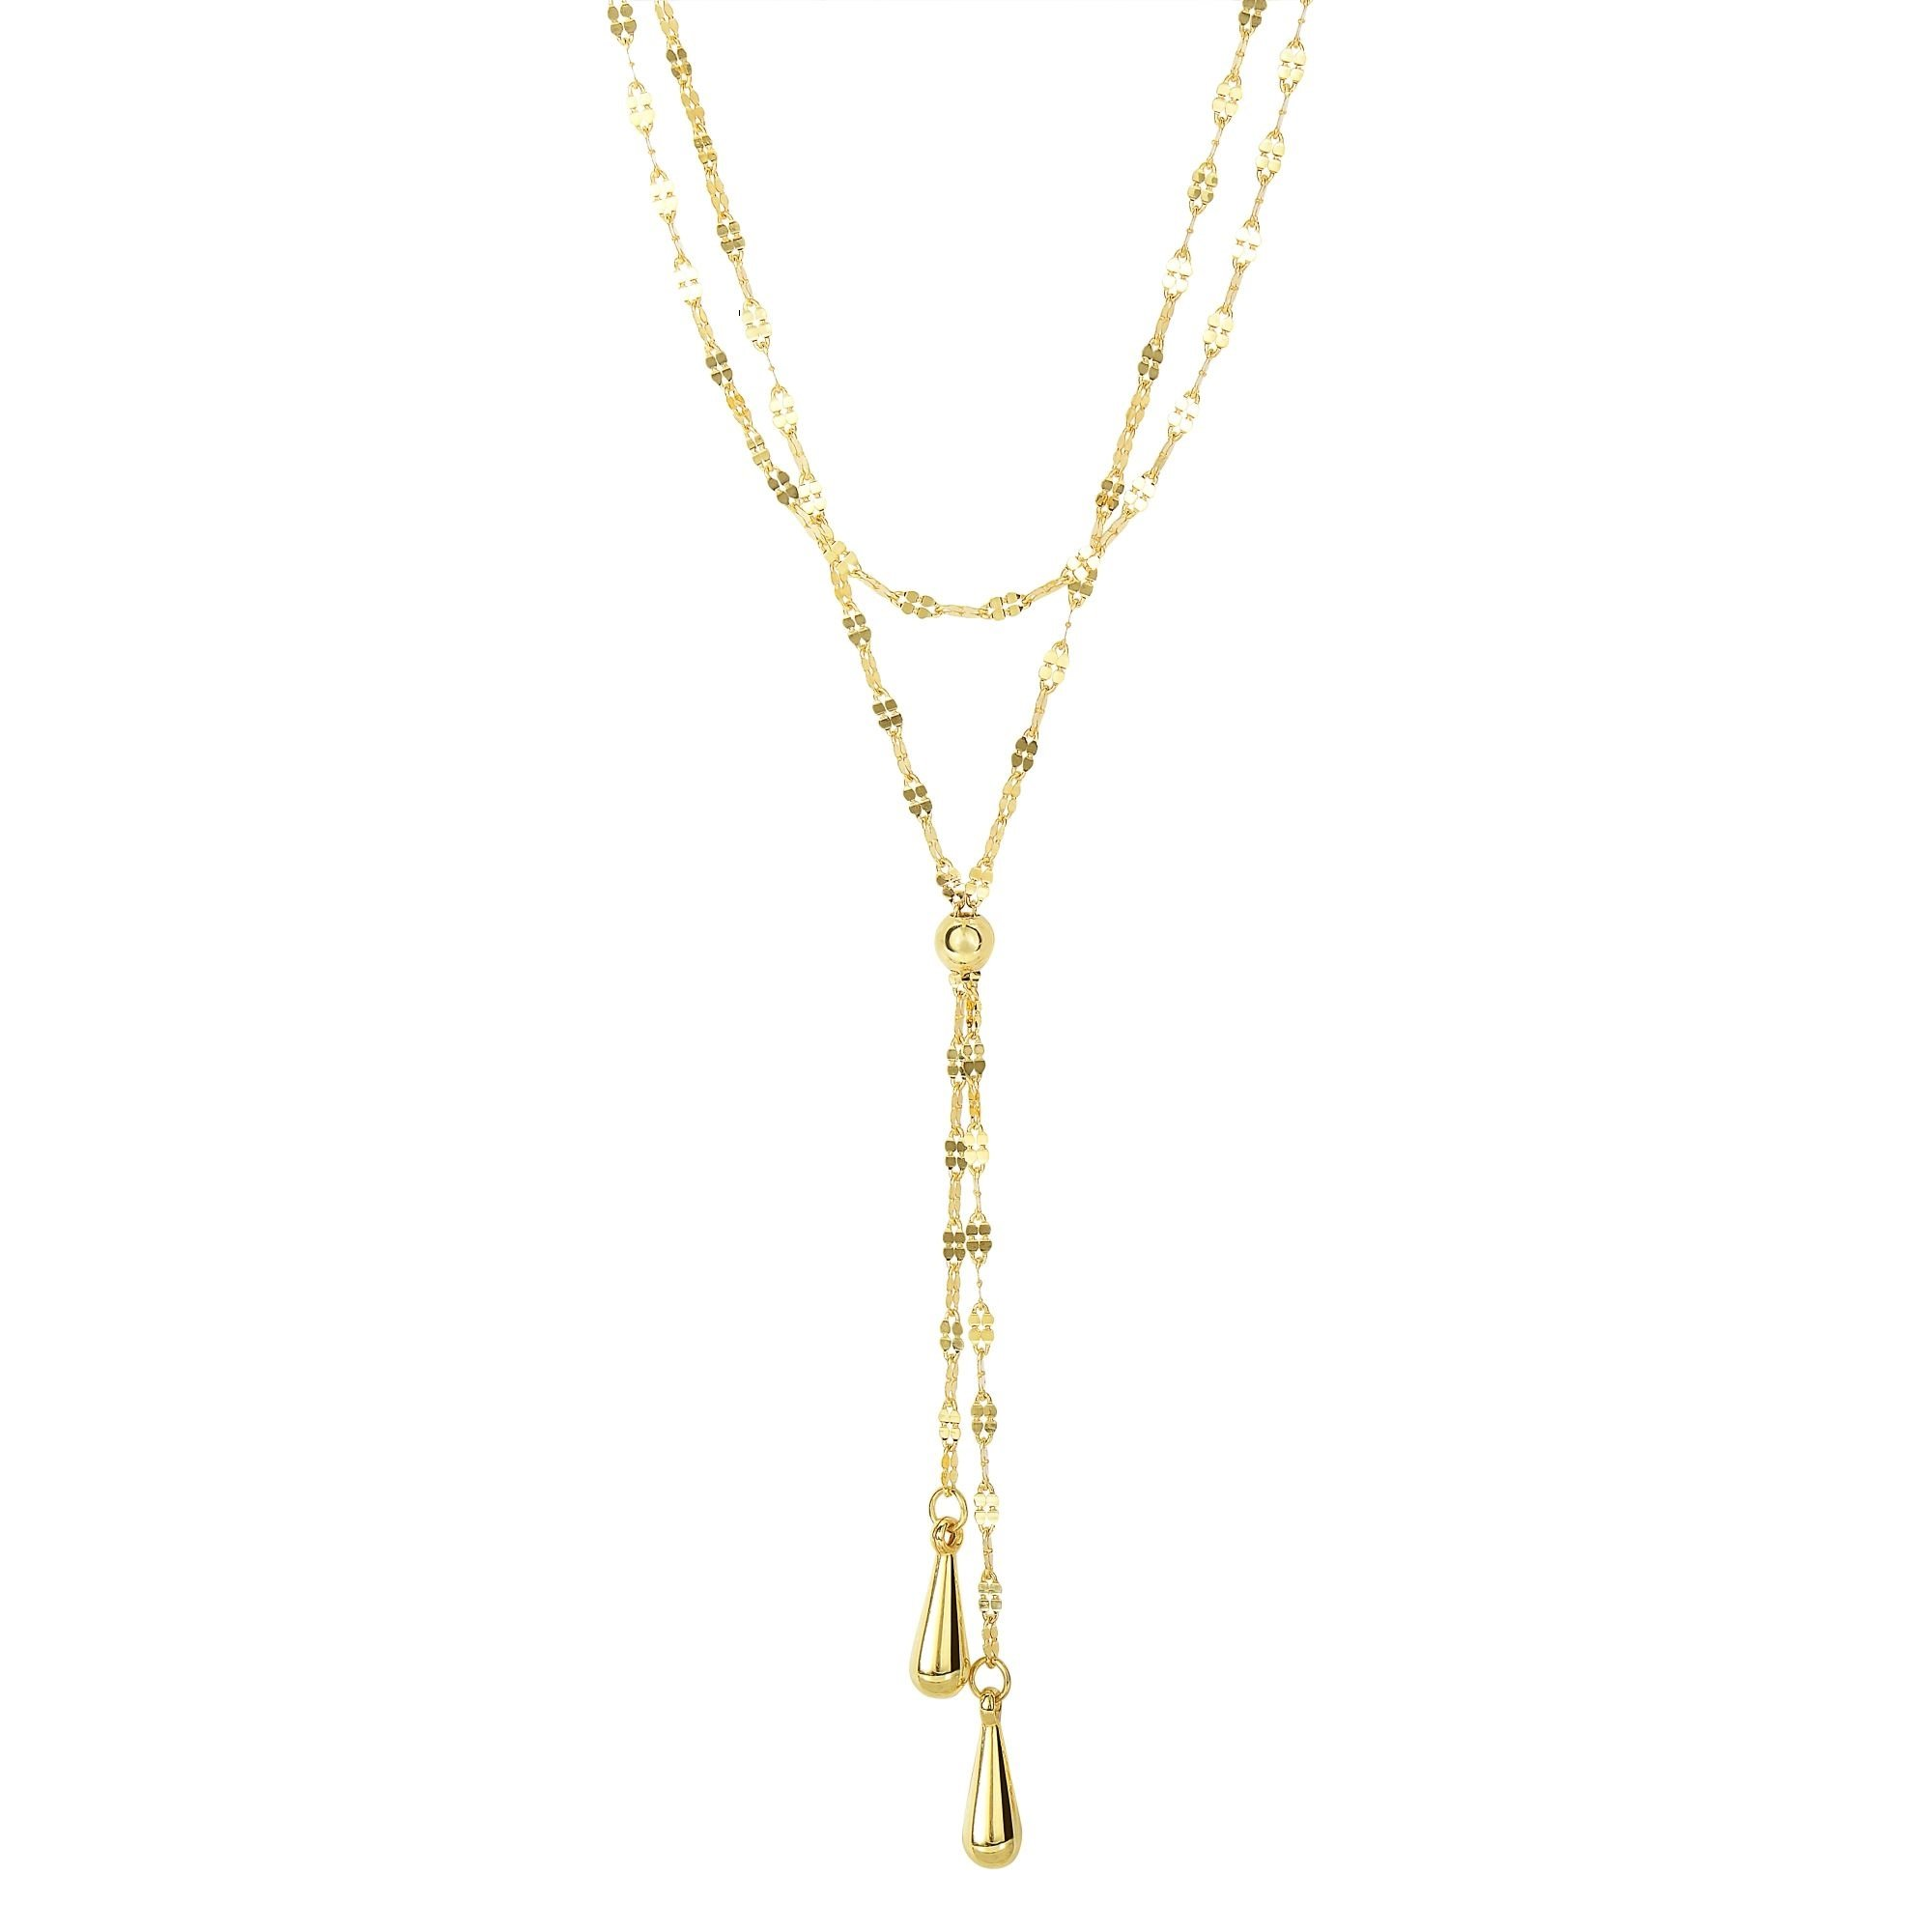 14k 17'' Yellow Gold 1.25mm Shiny2-Row Fancy Flat Mariner as Lariet Style Necklace with Double 1'' Teardrop Strand+Lobster Clasp